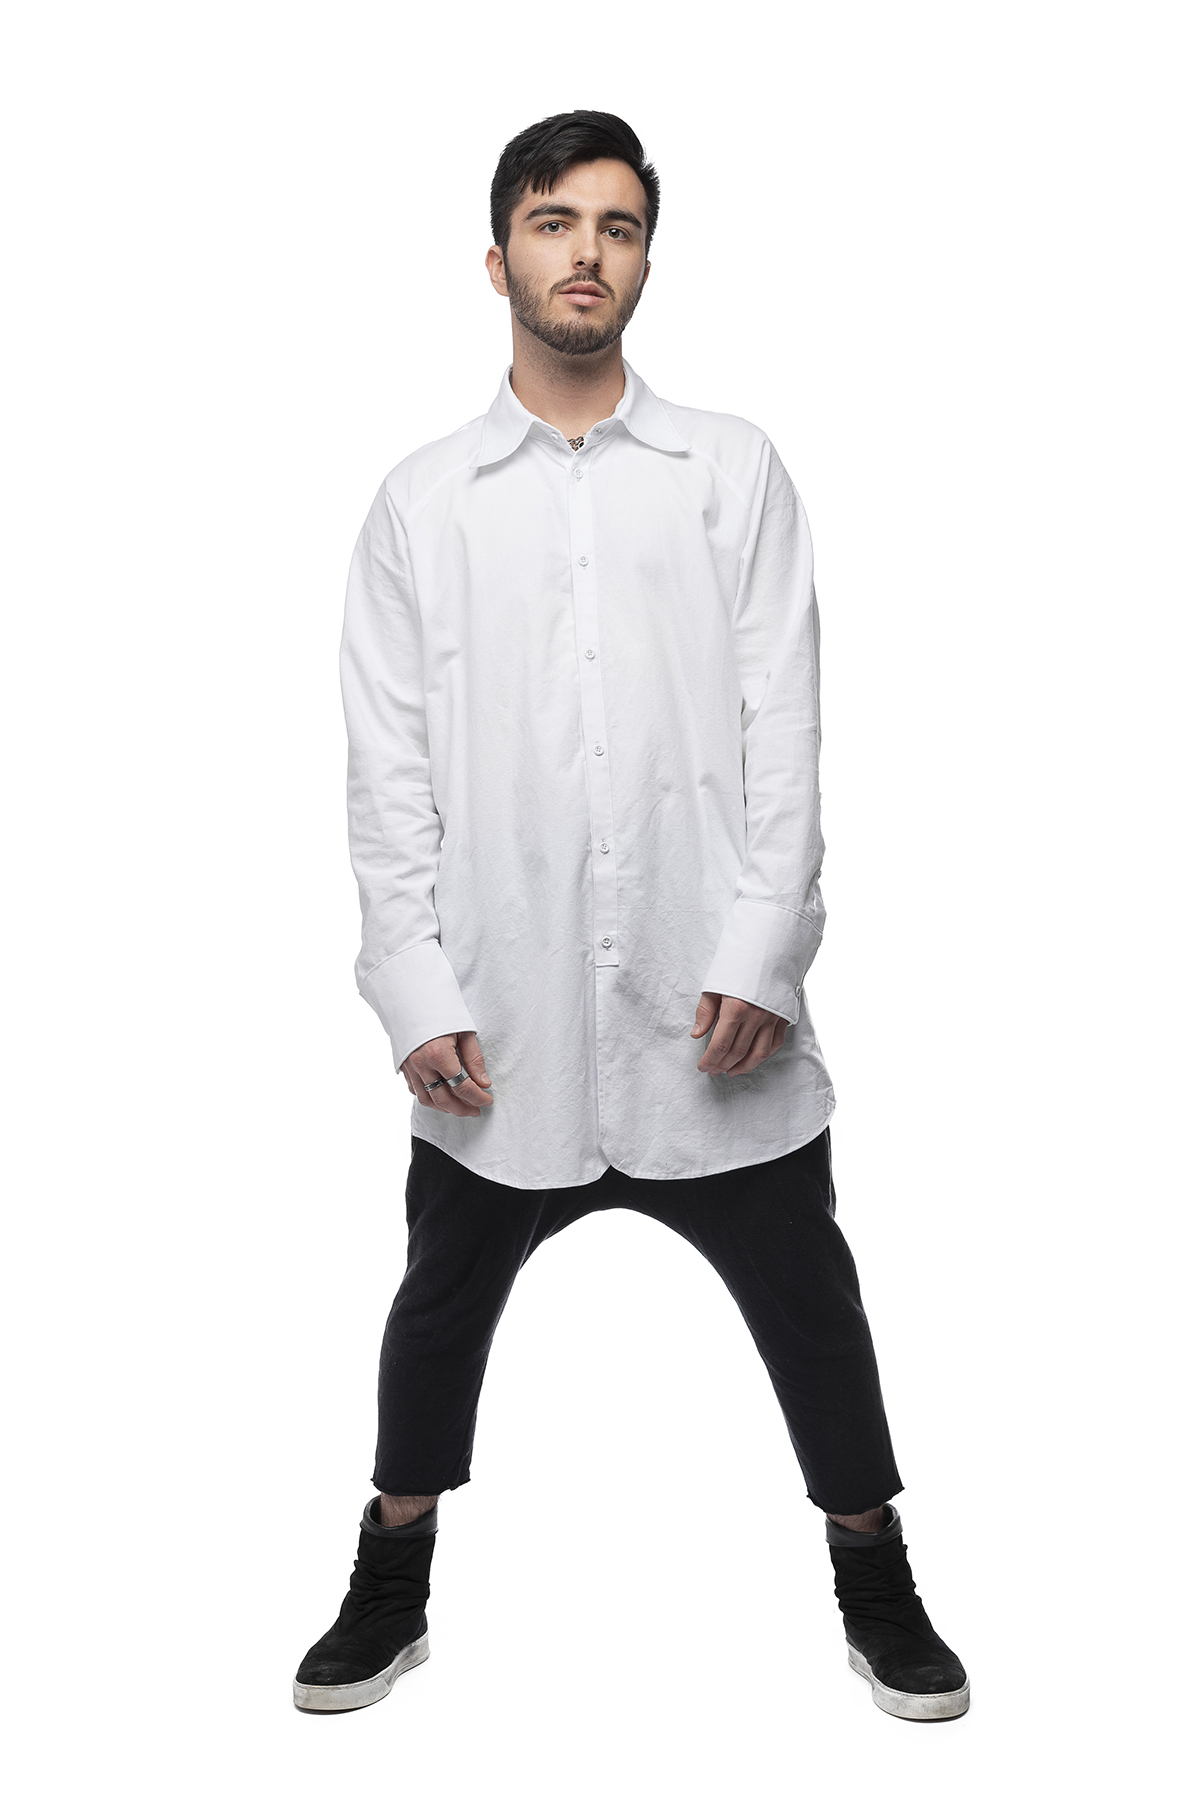 A functional clothing design of a white shirt and short black pants.